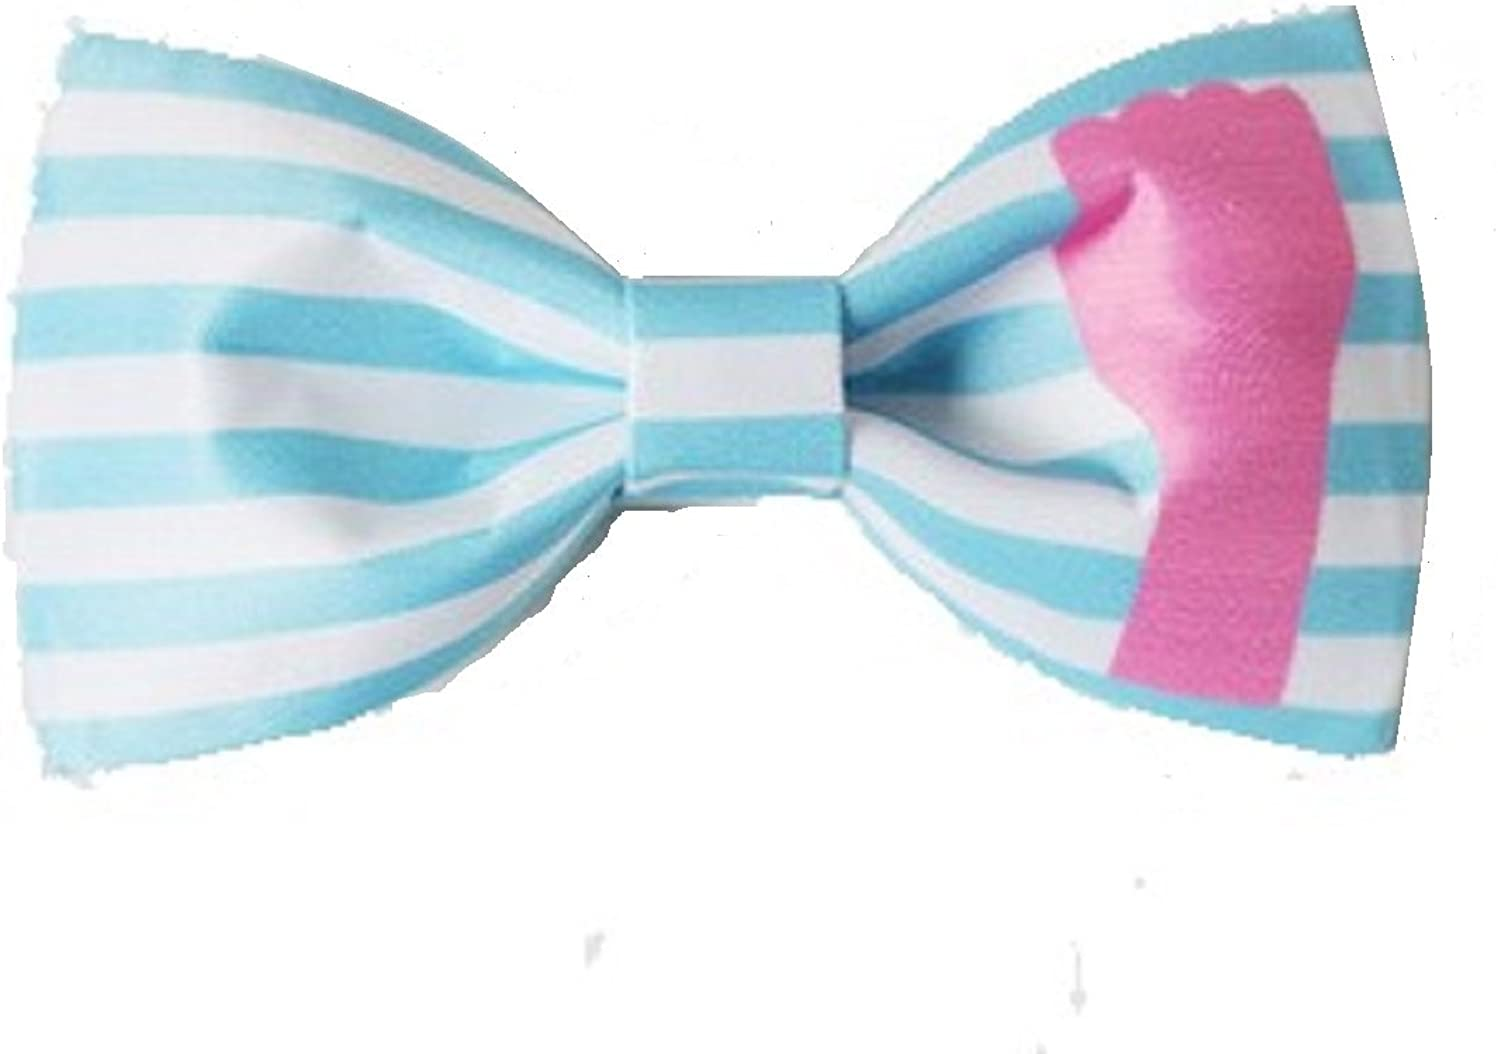 Amytong Mens Luxury Handmade Original Fashion Design Bow Tie